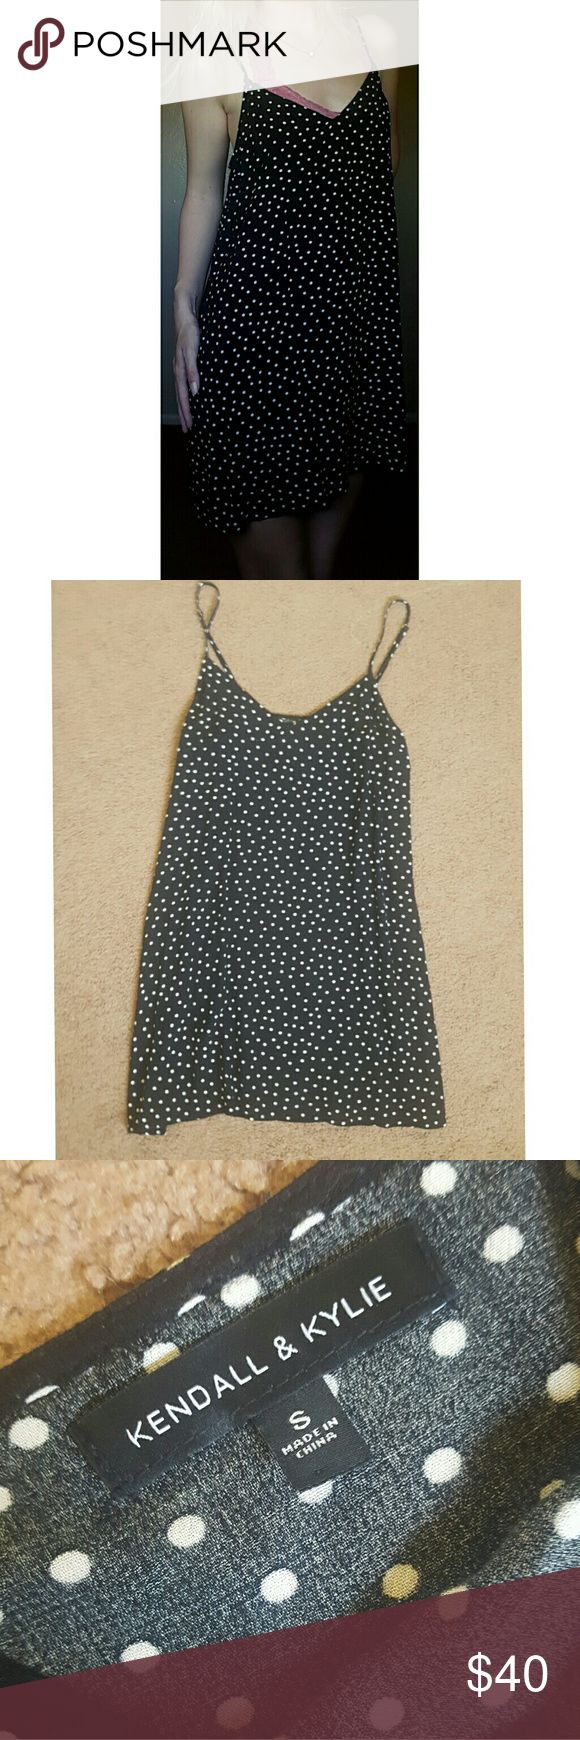 Polka Dot Slip Dress K&K So I really don't even want to sell this but I really should have gotten a medium. It's sold out online and everywhere else so I'm selling for full retail or the off chance that SOMEONE out there is desperately wanting to trade a M/L for this small. Lol a girl can dream!? I can't get over how cute this thing is but if you want it for retail price it's yours! 100% crepe Rayon Kendall & Kylie for Pacsun Kendall & Kylie Dresses Mini